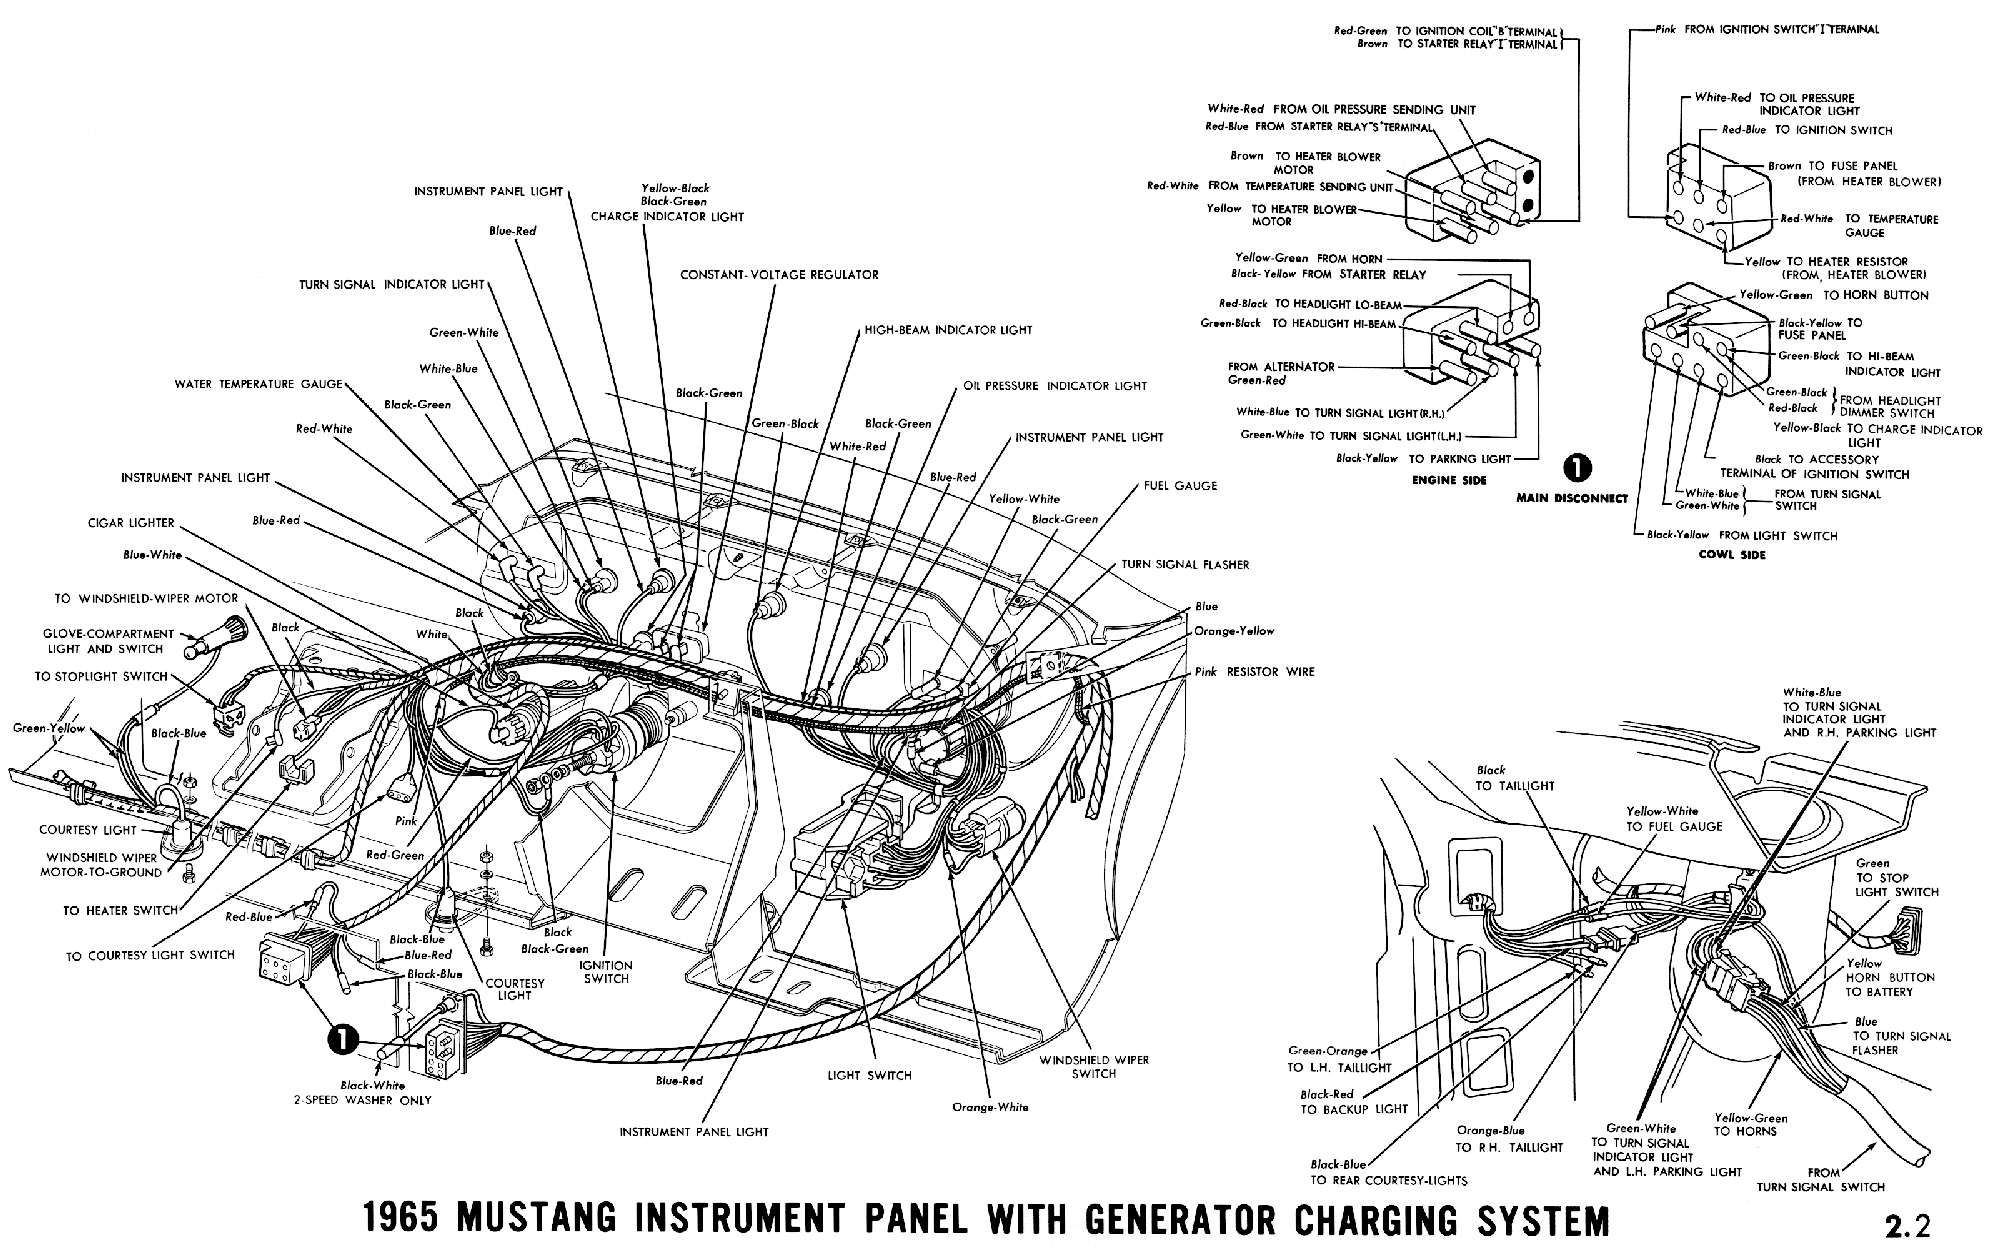 tracing panel wiring diagram of an alternator 1996 ford ranger 1965 mustang instrument with charging